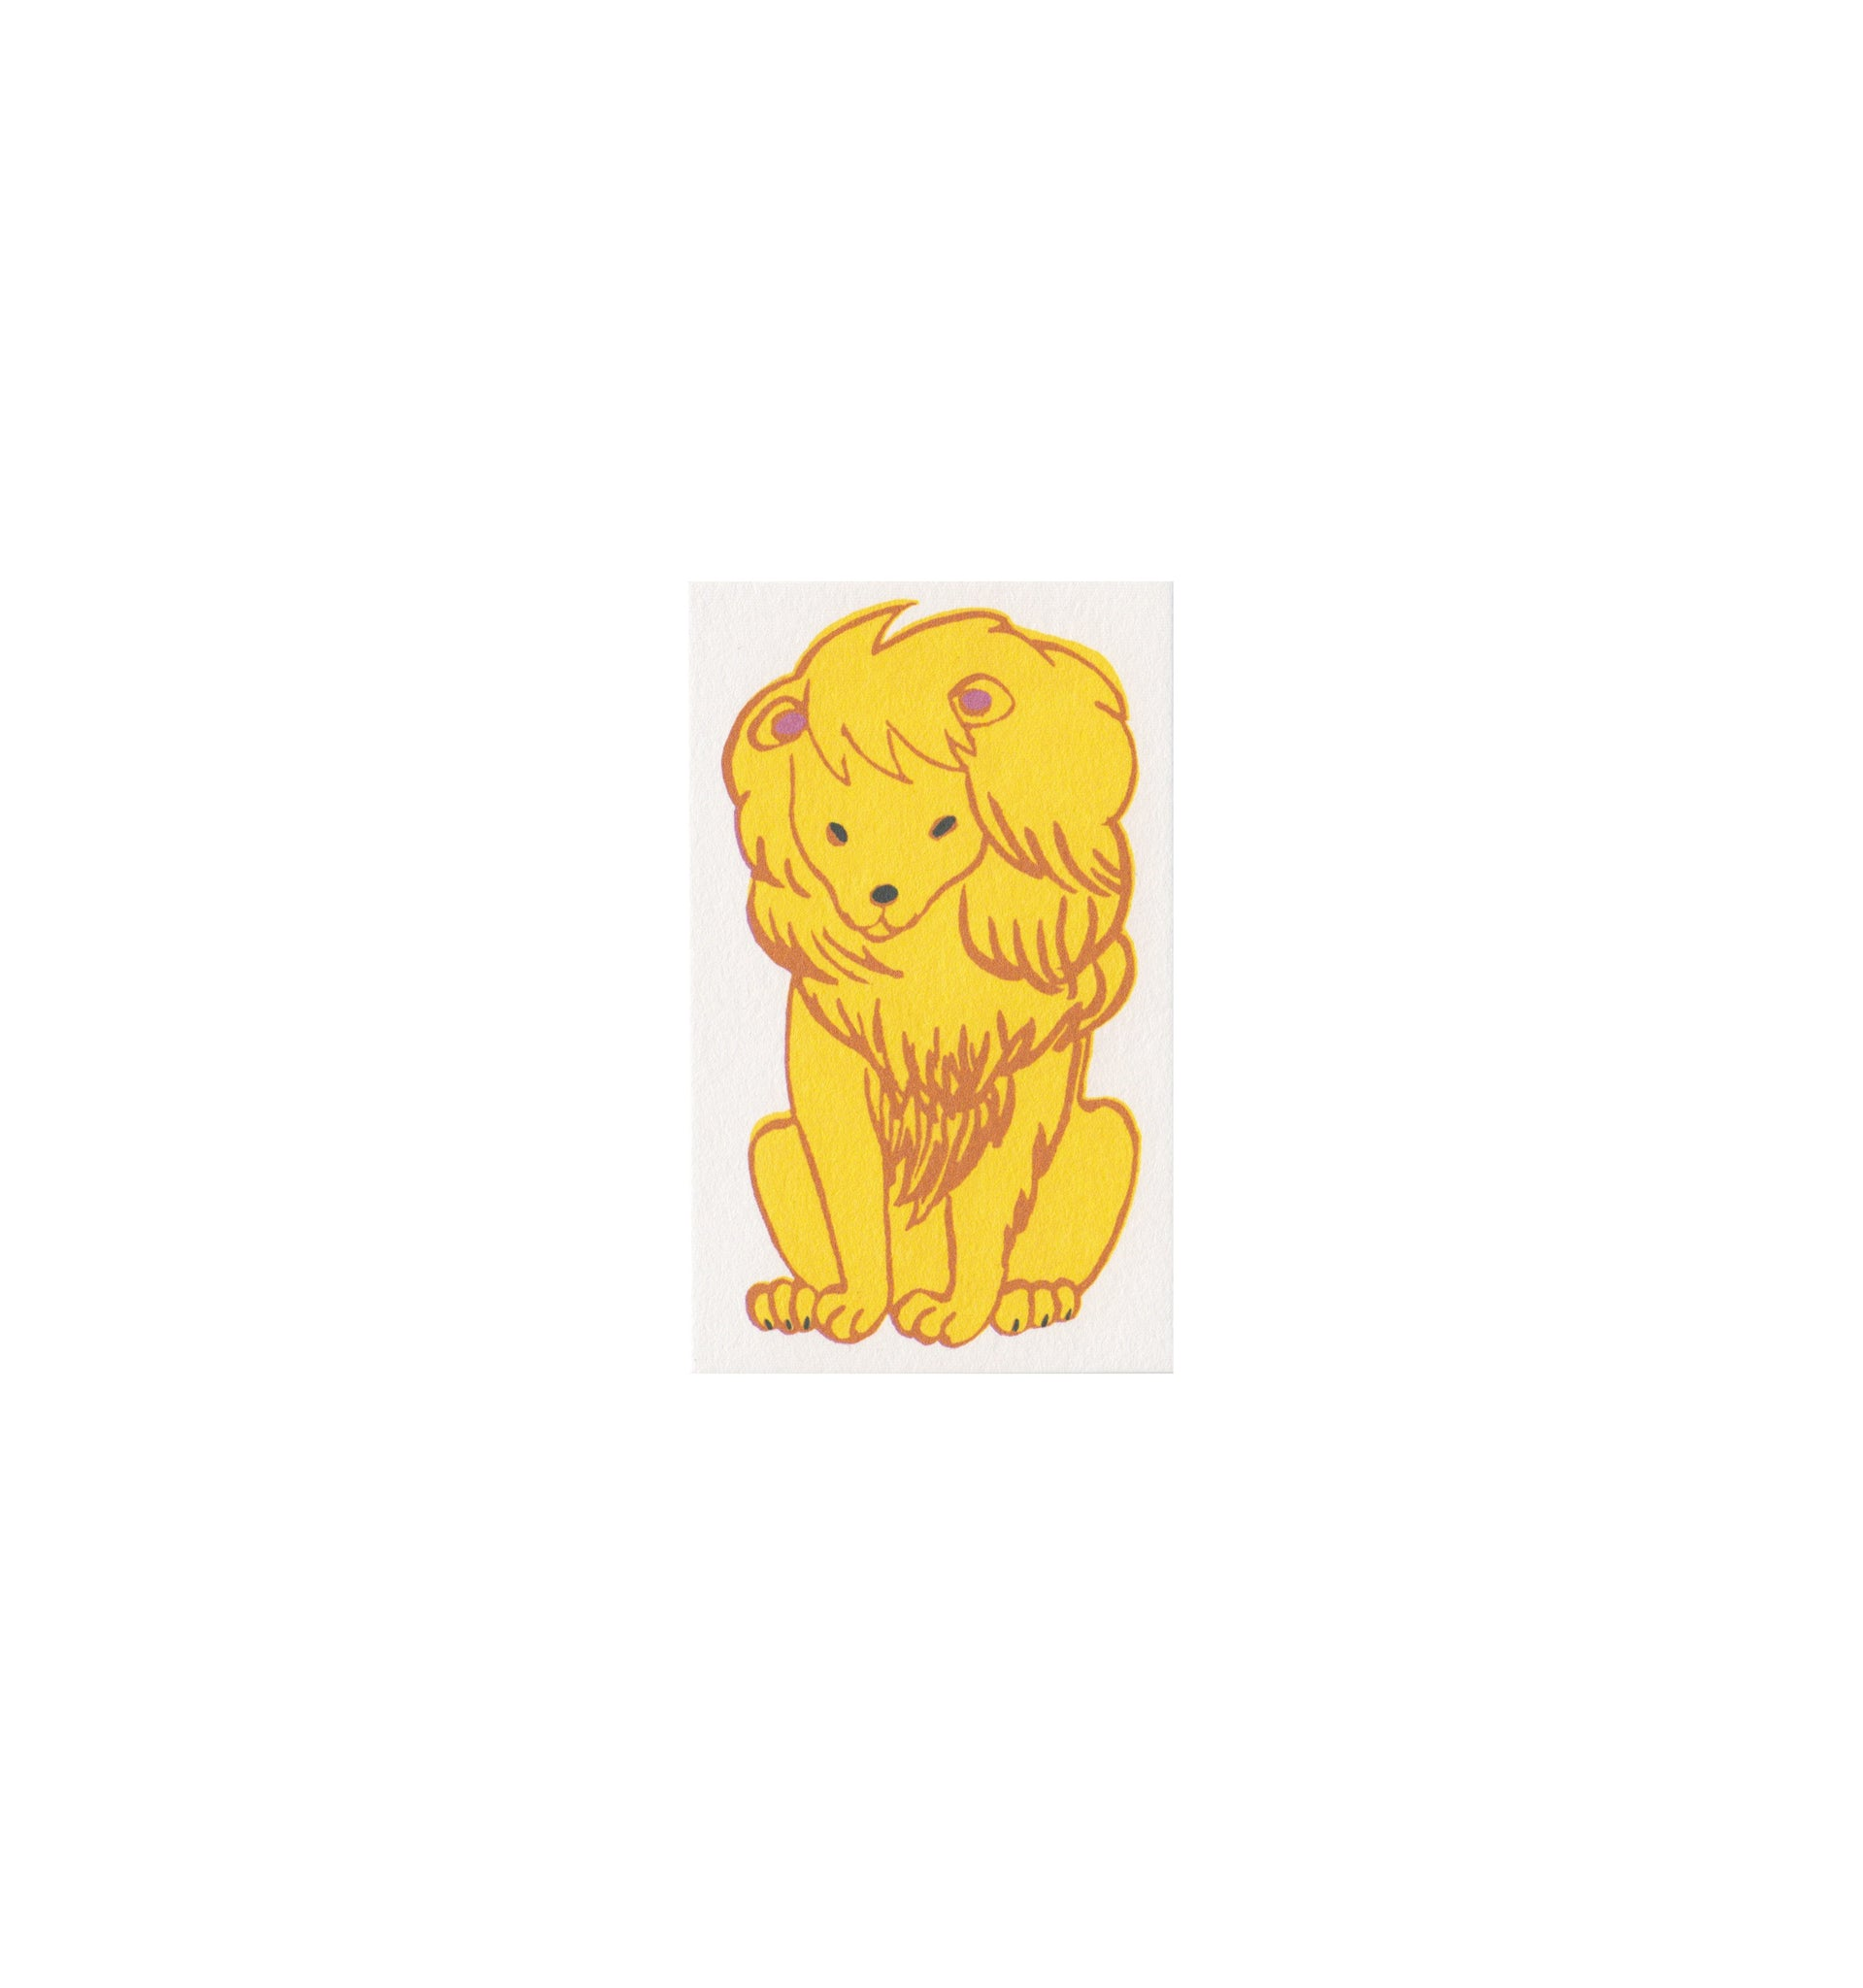 Classiky Small Treasuring Cards: Lion